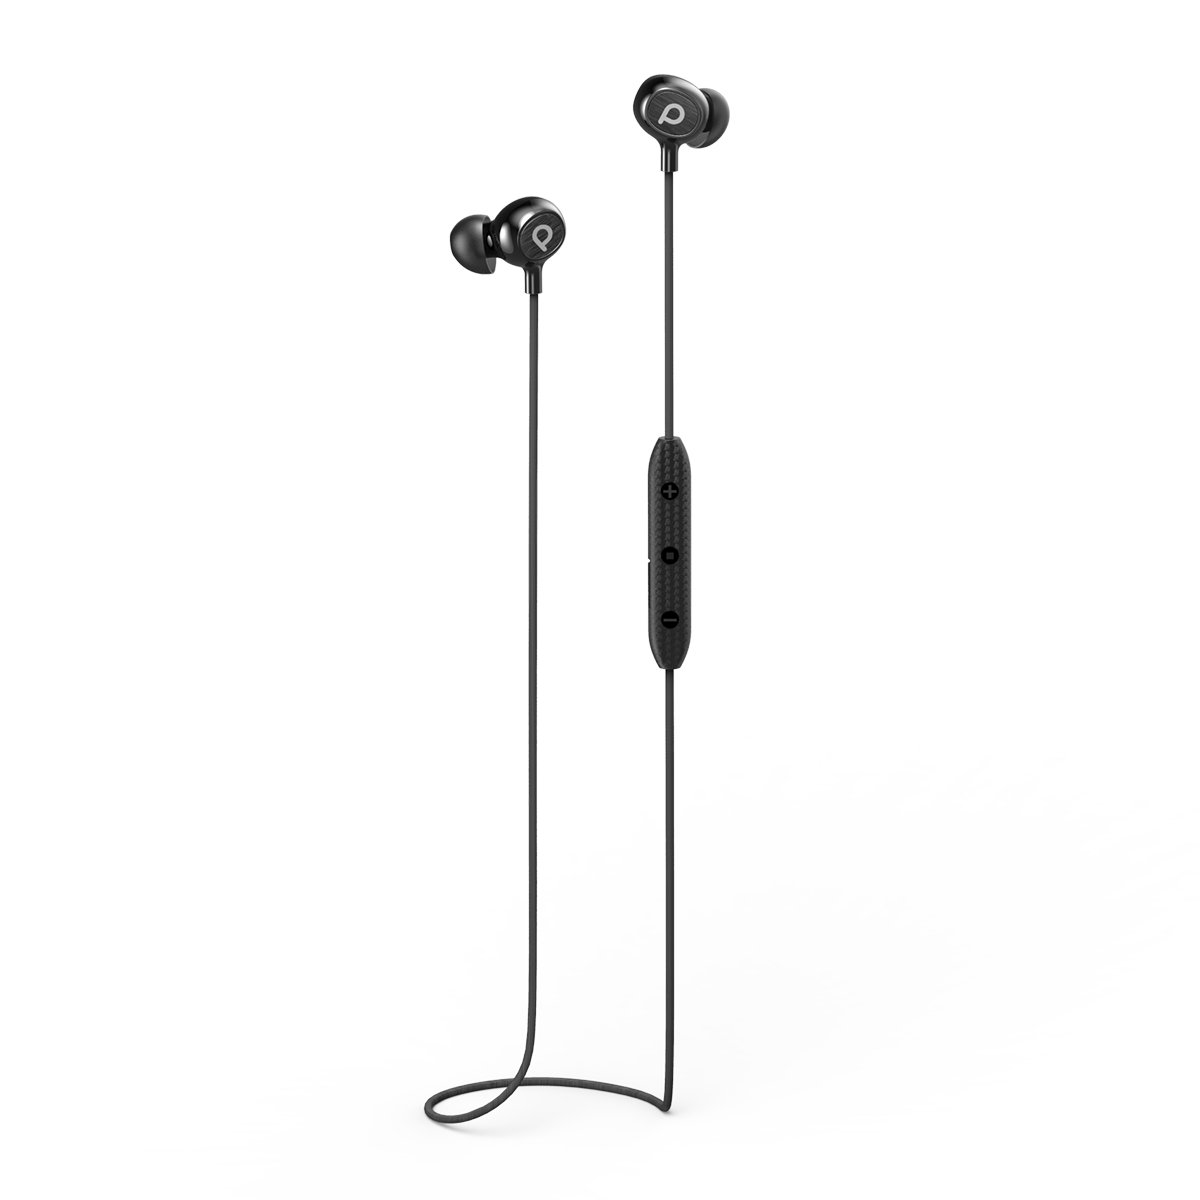 PaMu X16 Best Affordable Volume Control & Noise Isolating Magnetic Bluetooth Earphones